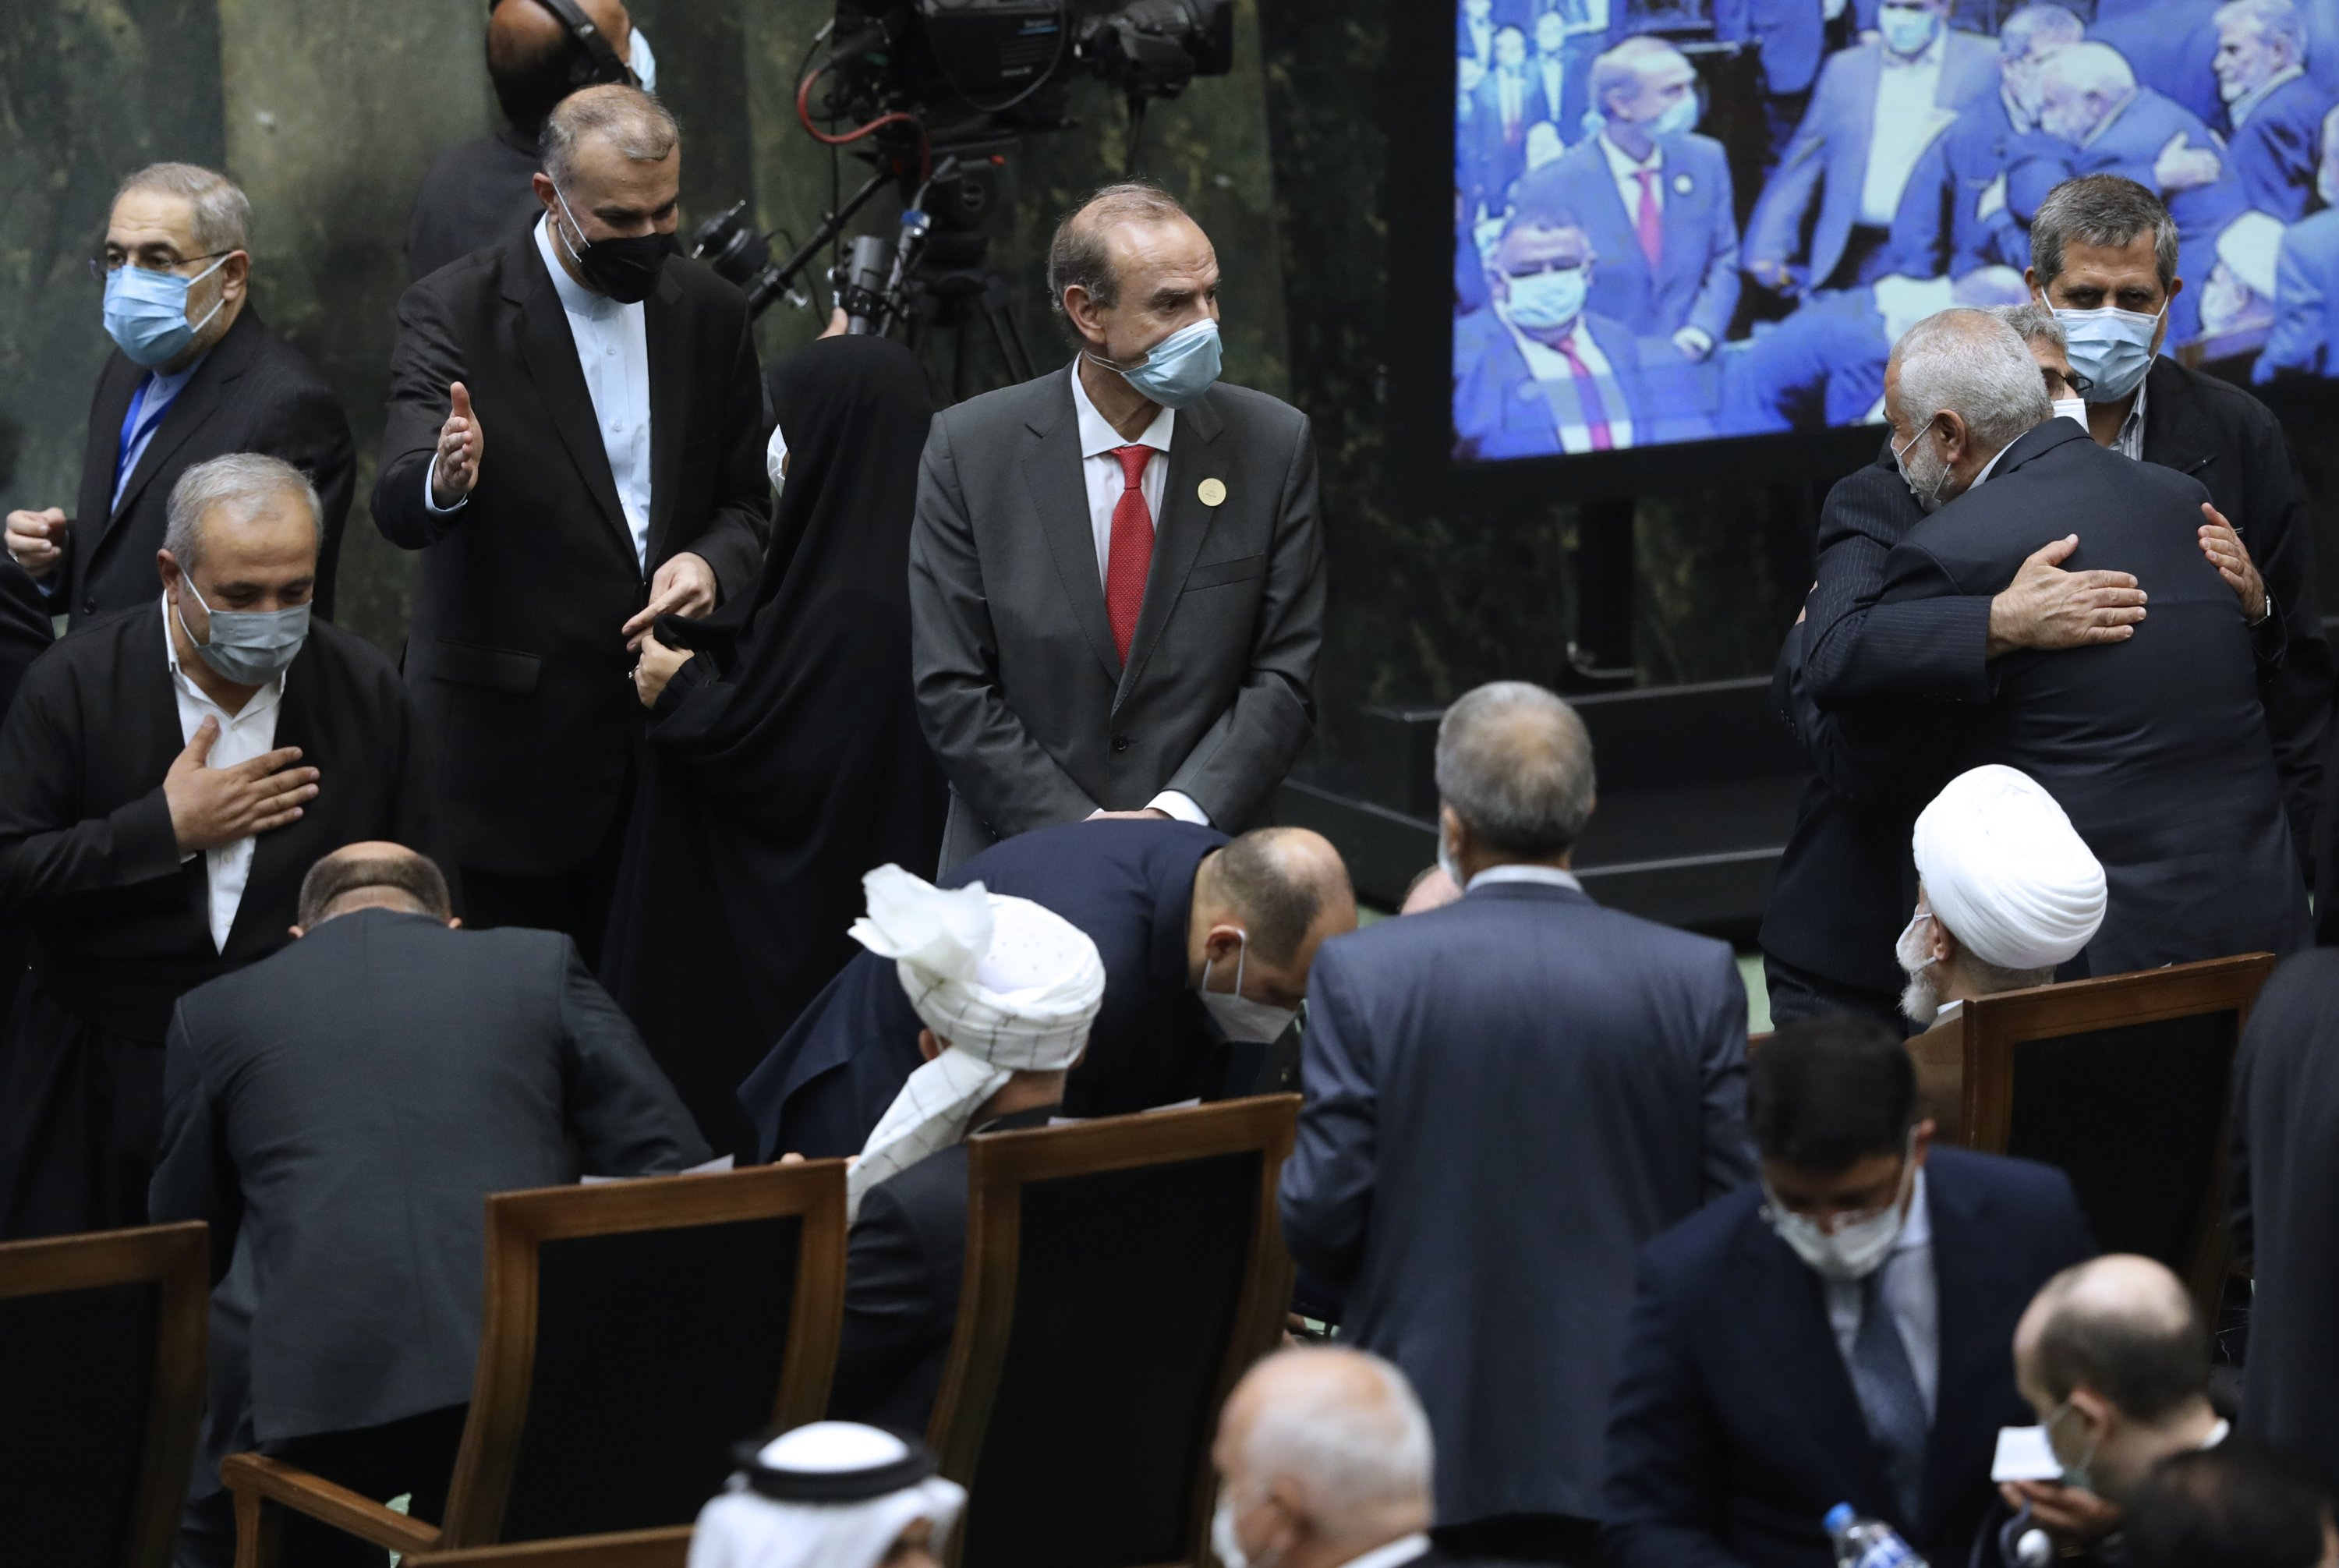 Deputy Secretary General and Political Director of the European External Action Service (EEAS) Enrique Mora (C) arrives to attend the swearing-in ceremony of Iranian President Ebrahim Raisi at the parliament in Tehran, Iran, Aug. 5, 2021. (AP Photo)